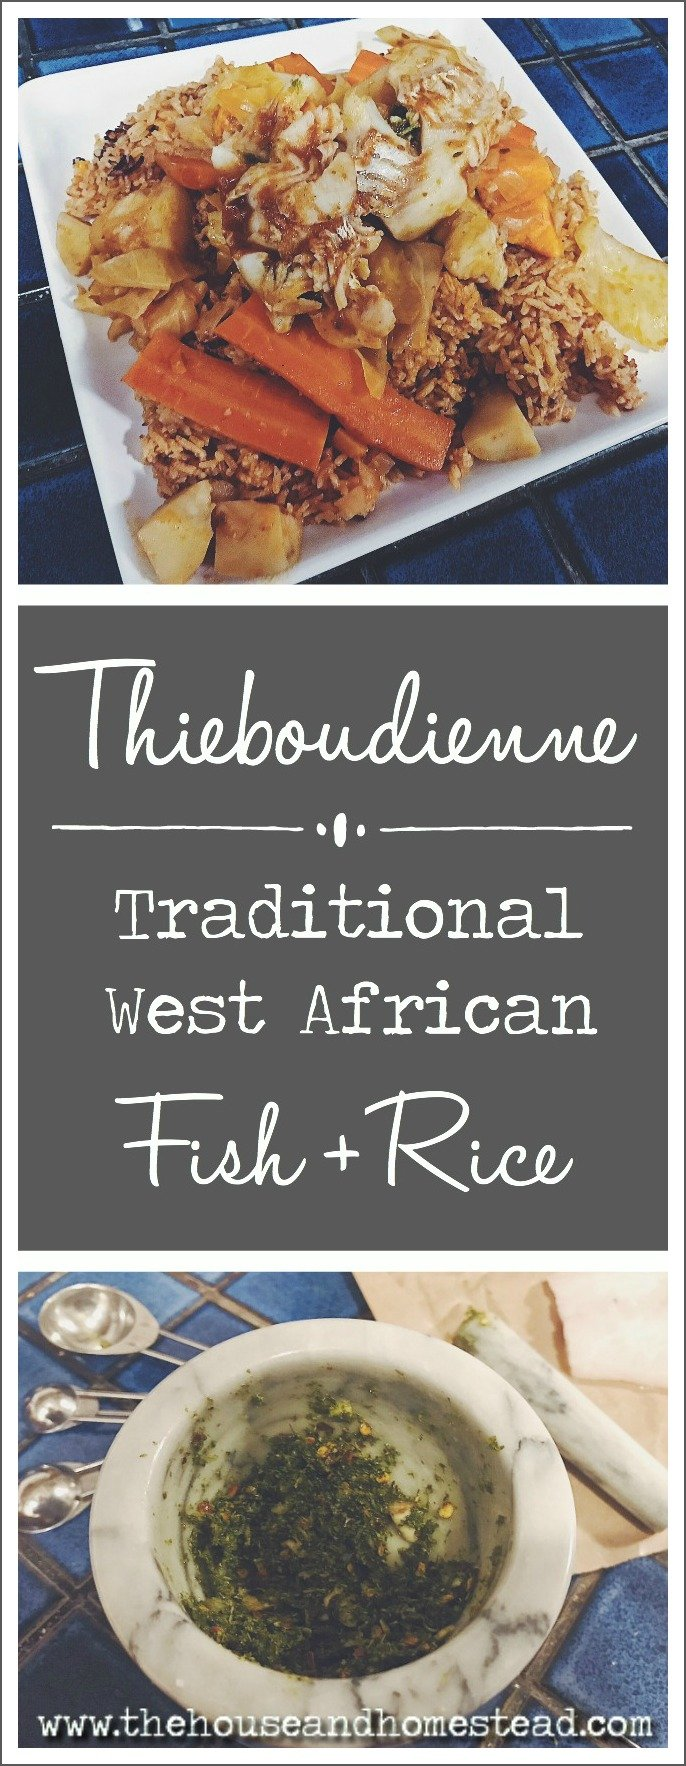 Thieboudienne is the national dish of the West African country of Senegal. Made from scratch with fish, rice, tomato sauce and assorted veggies, it is a tasty and healthy meal that keeps a nation going.